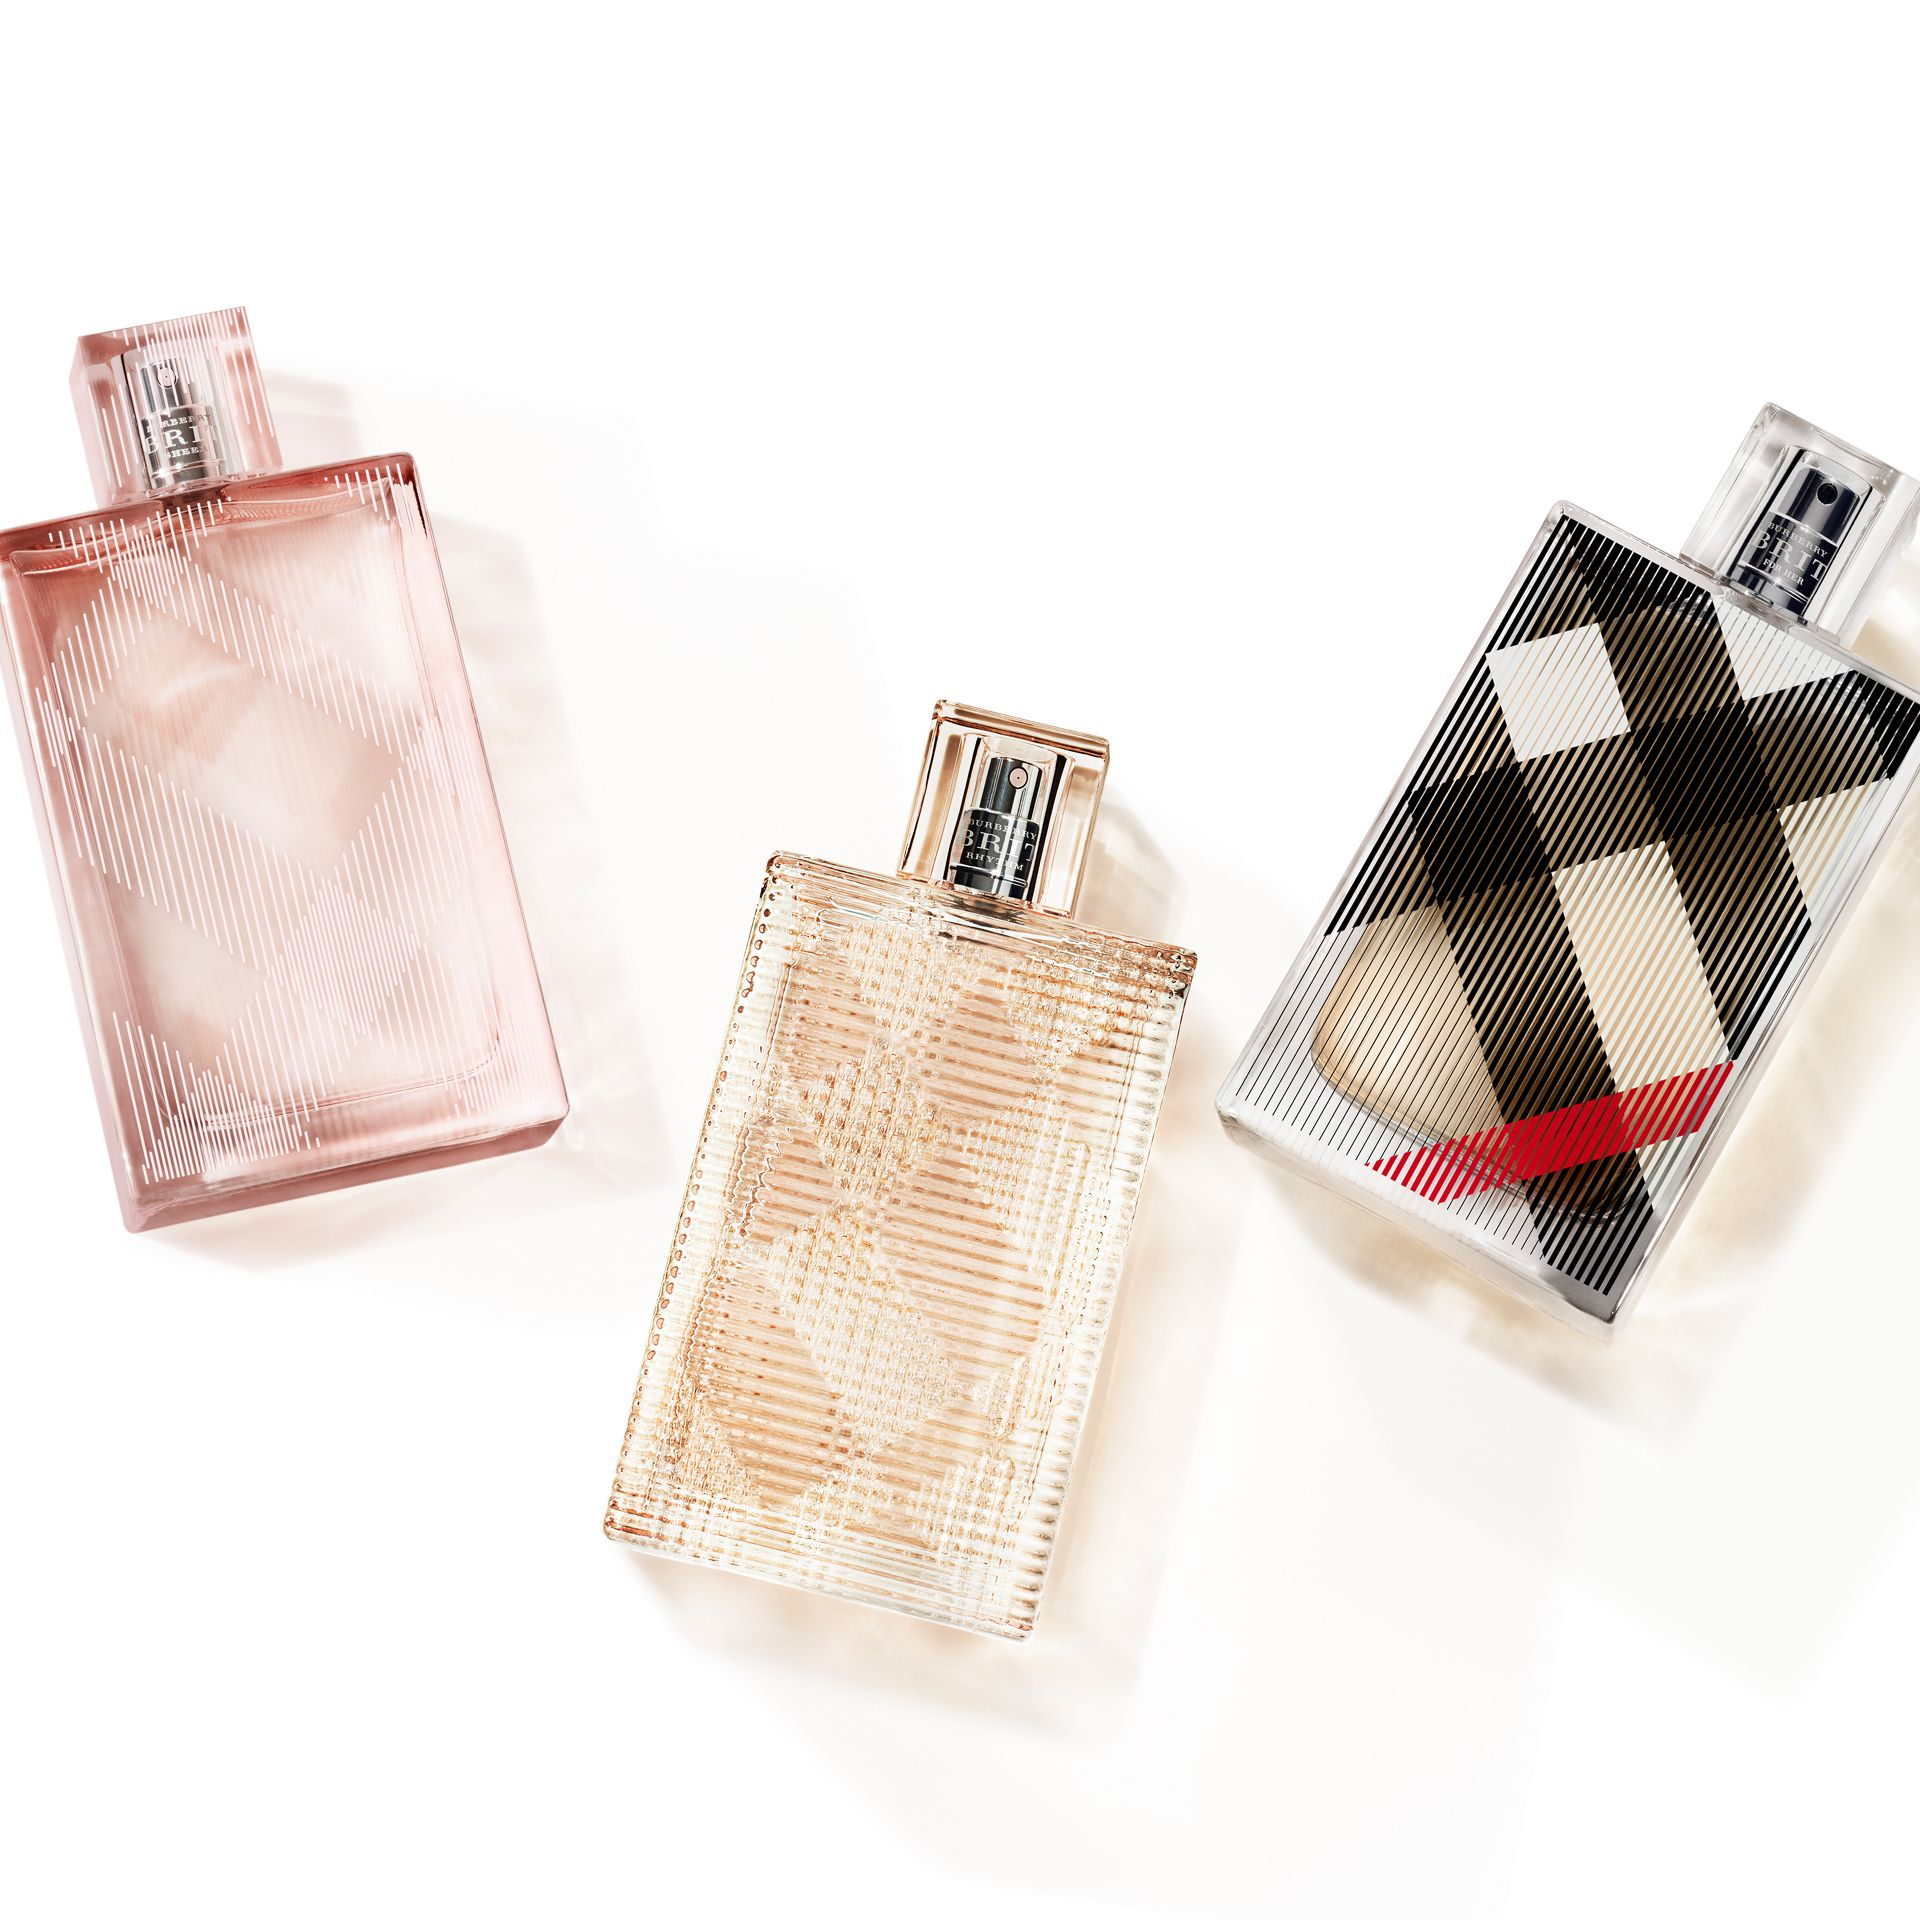 Burberry Brit Sheer Eau de Toilette 50ml - Women | Burberry United Kingdom - gallery image 2